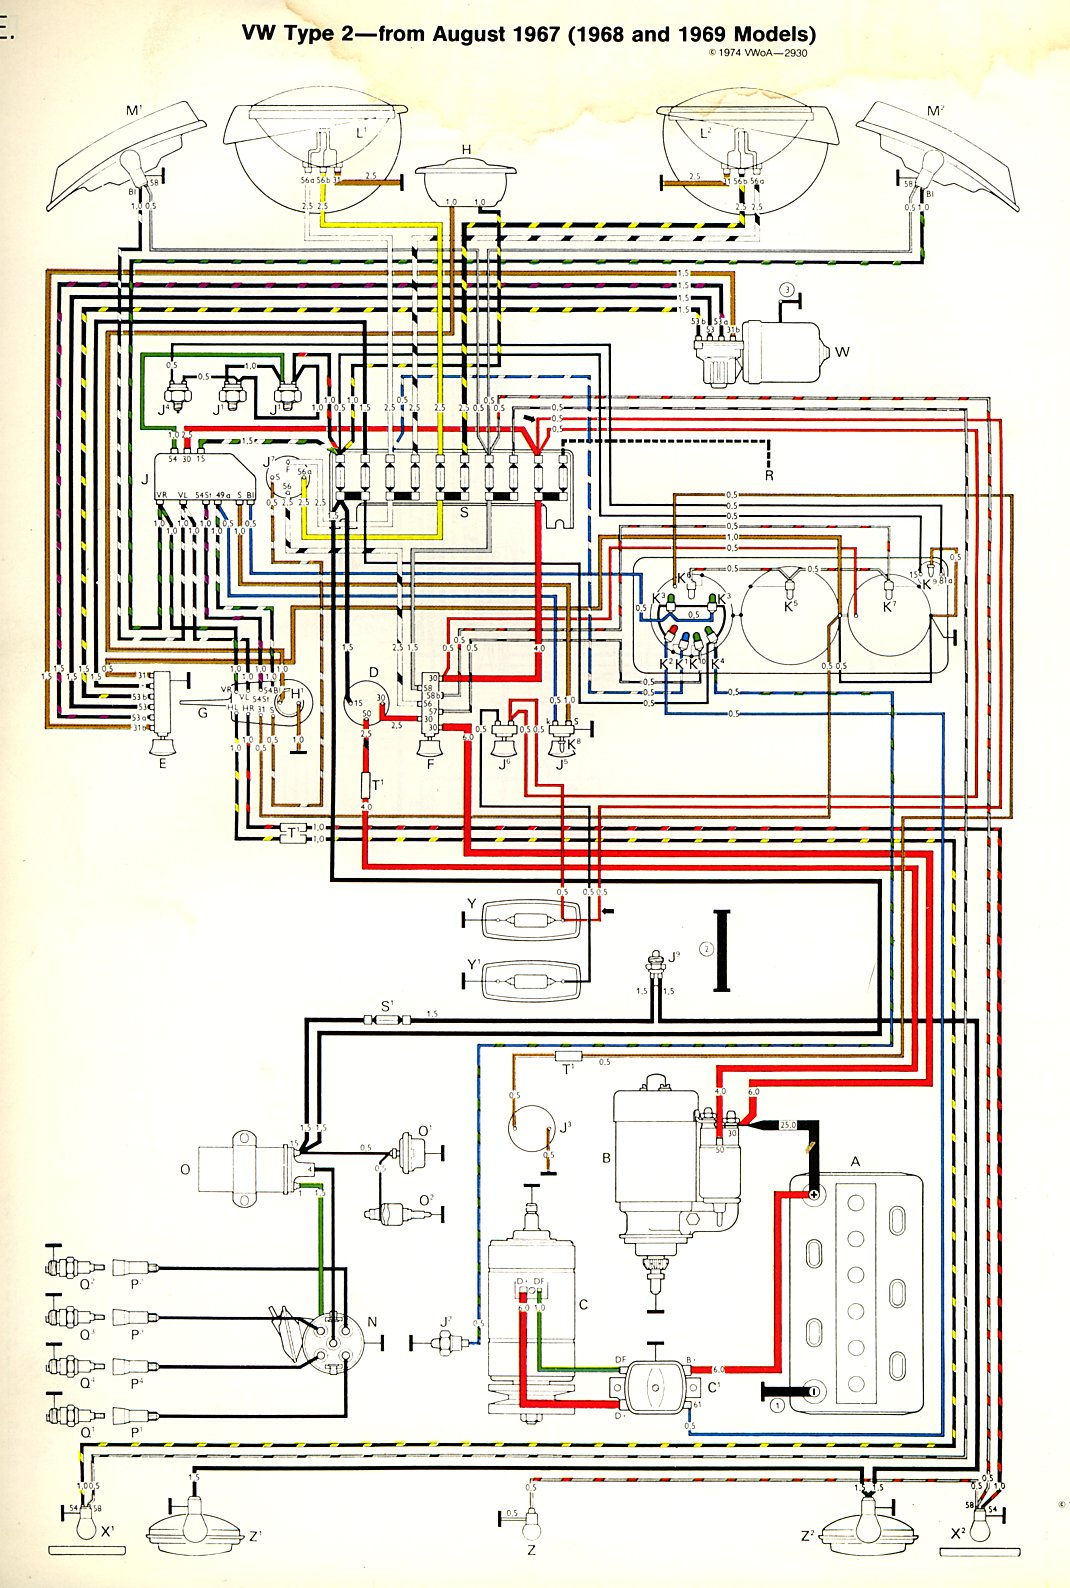 Type 2 Wiring Diagrams 1983 Jeep Cj7 Heater Diagram